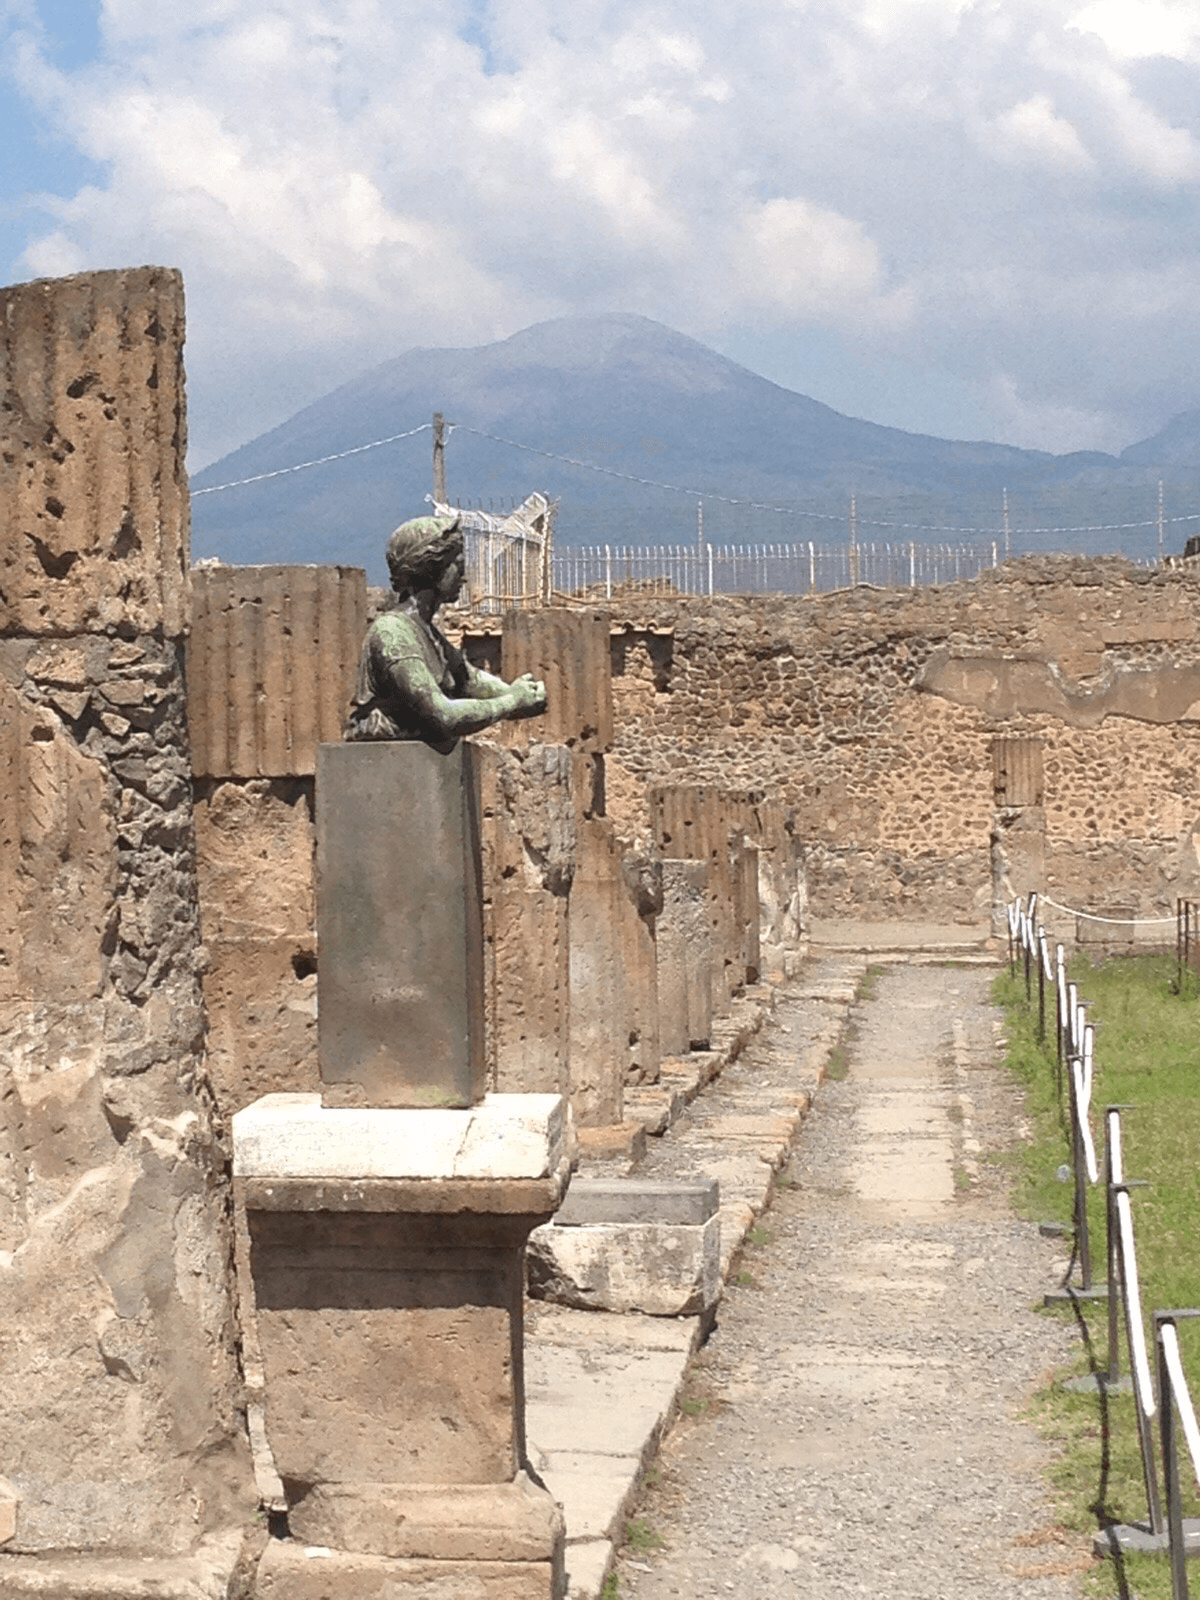 Sculpture in Pompeii.